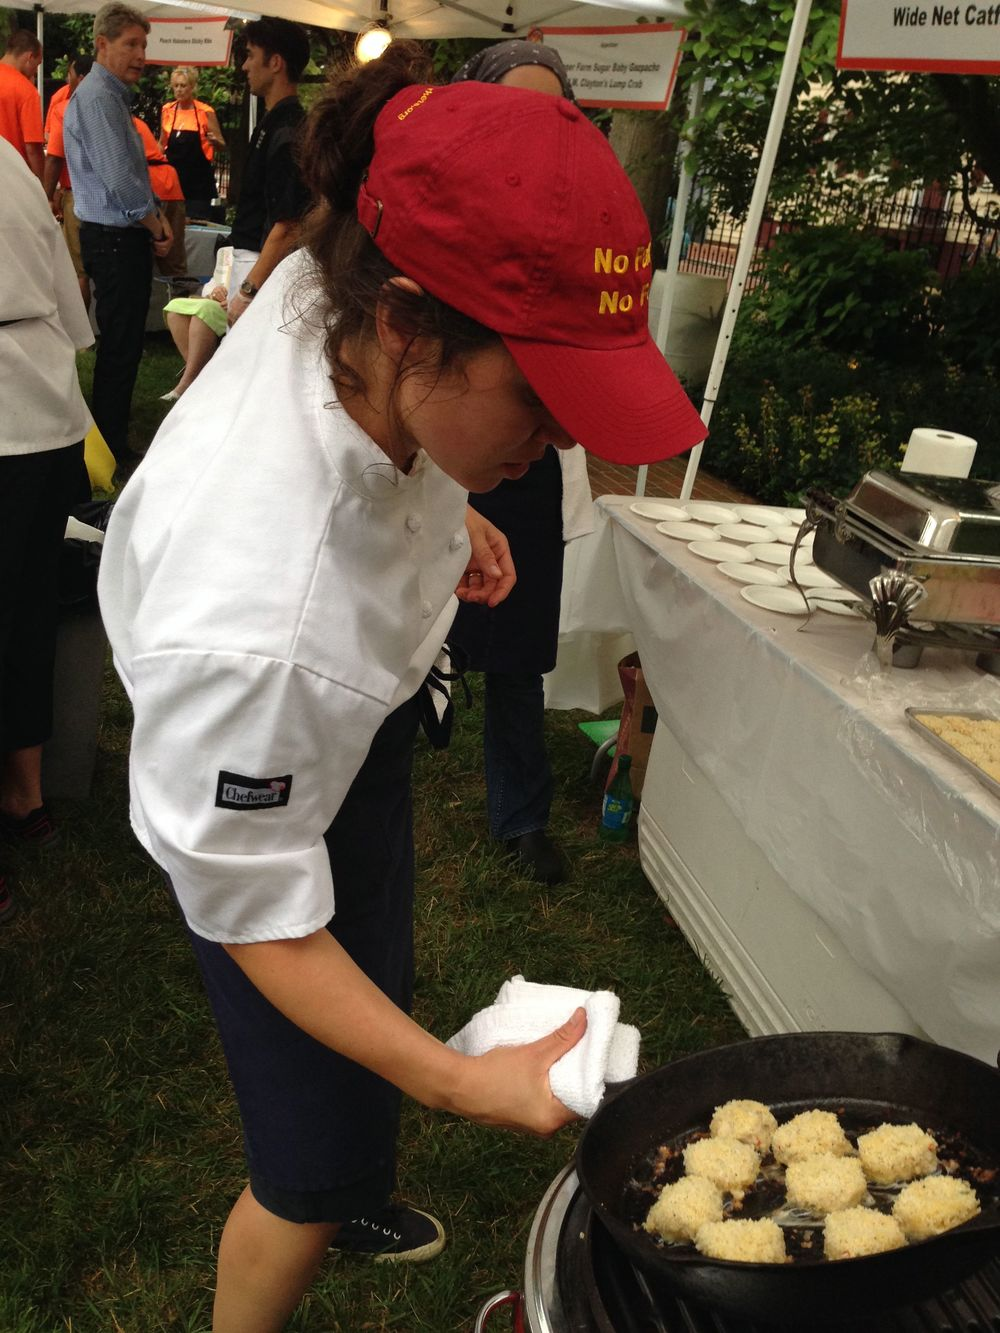 Chef Emily Hagel, of Miriam's Kitchen cooking blue catfish cakes. MK aims to end chronic homelessness in Washington, D.C.